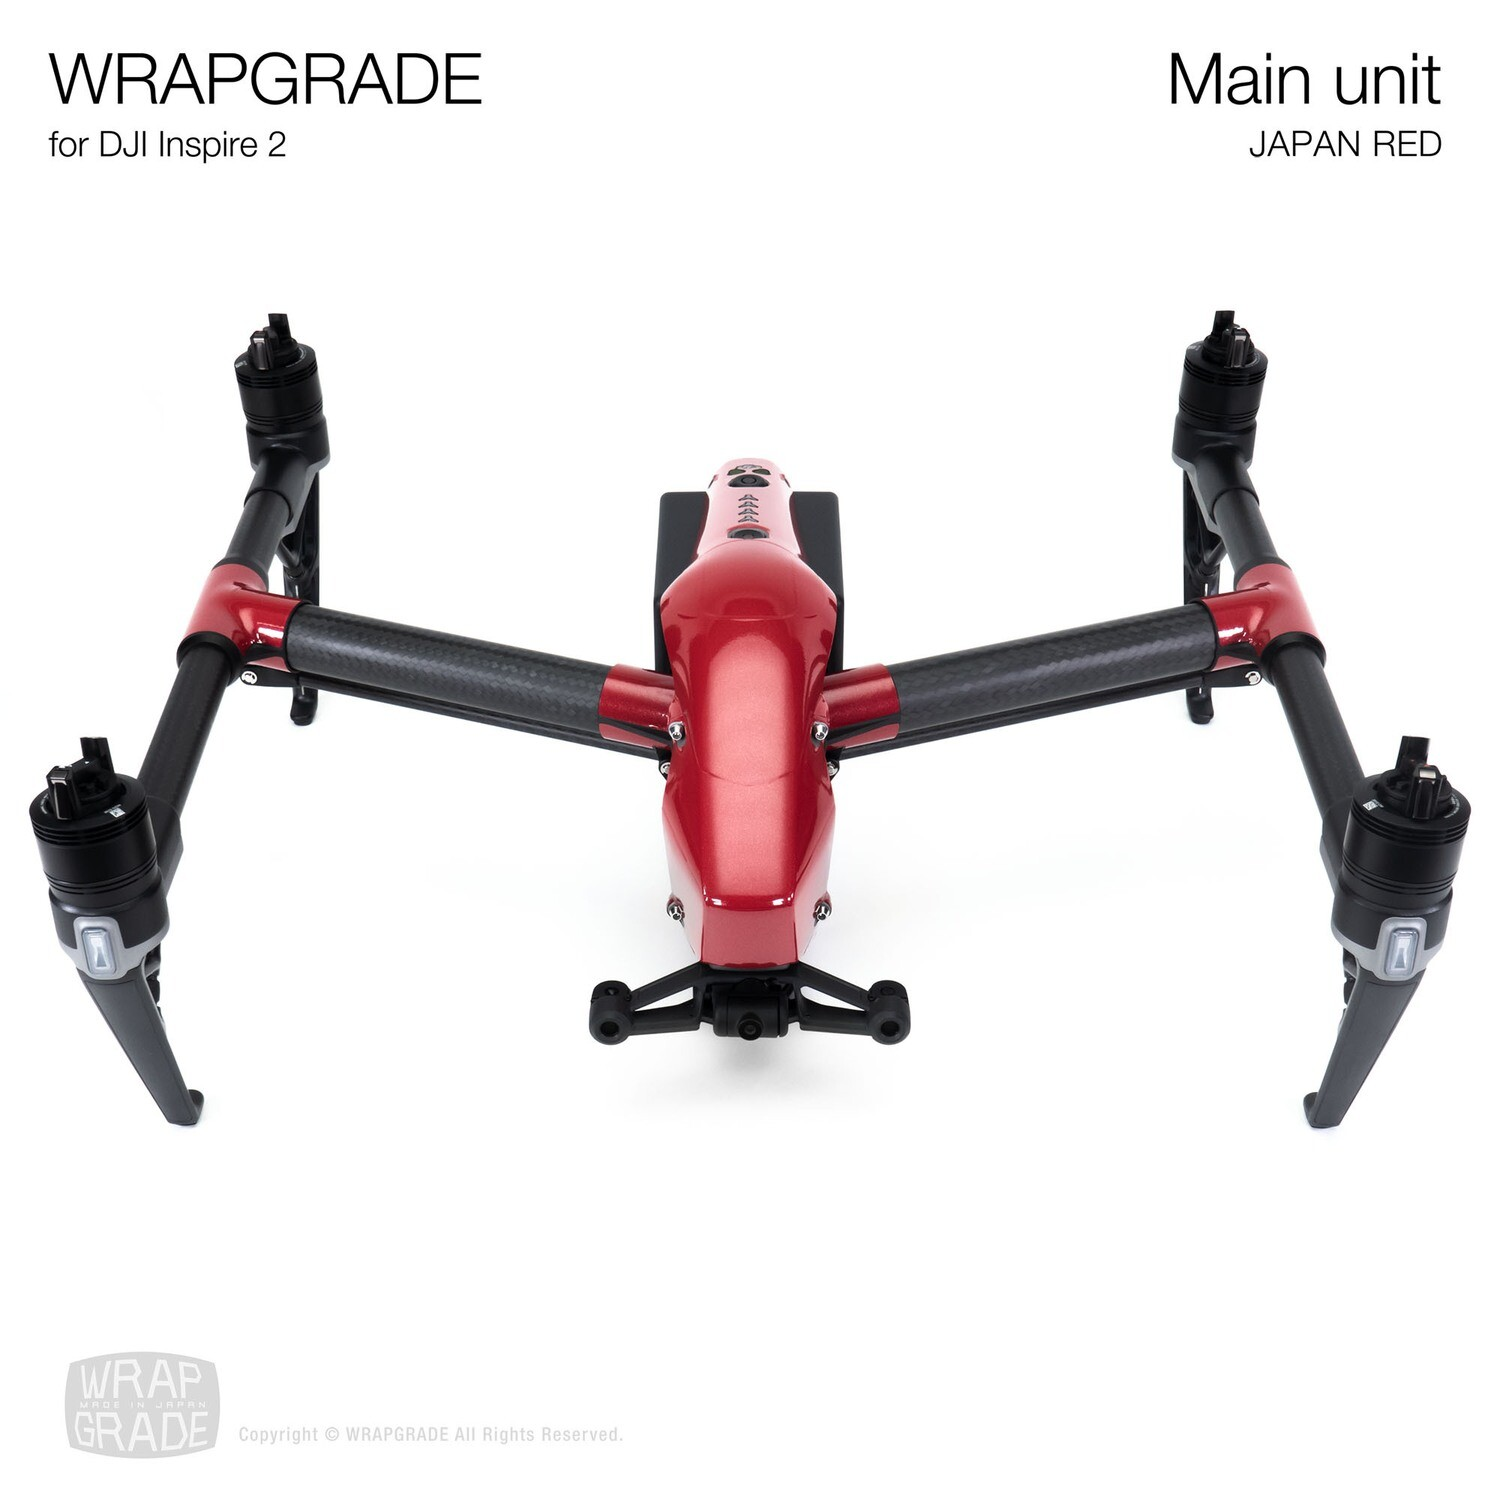 WRAPGRADE for DJI Inspire 2 | Main Unit (JAPAN RED)